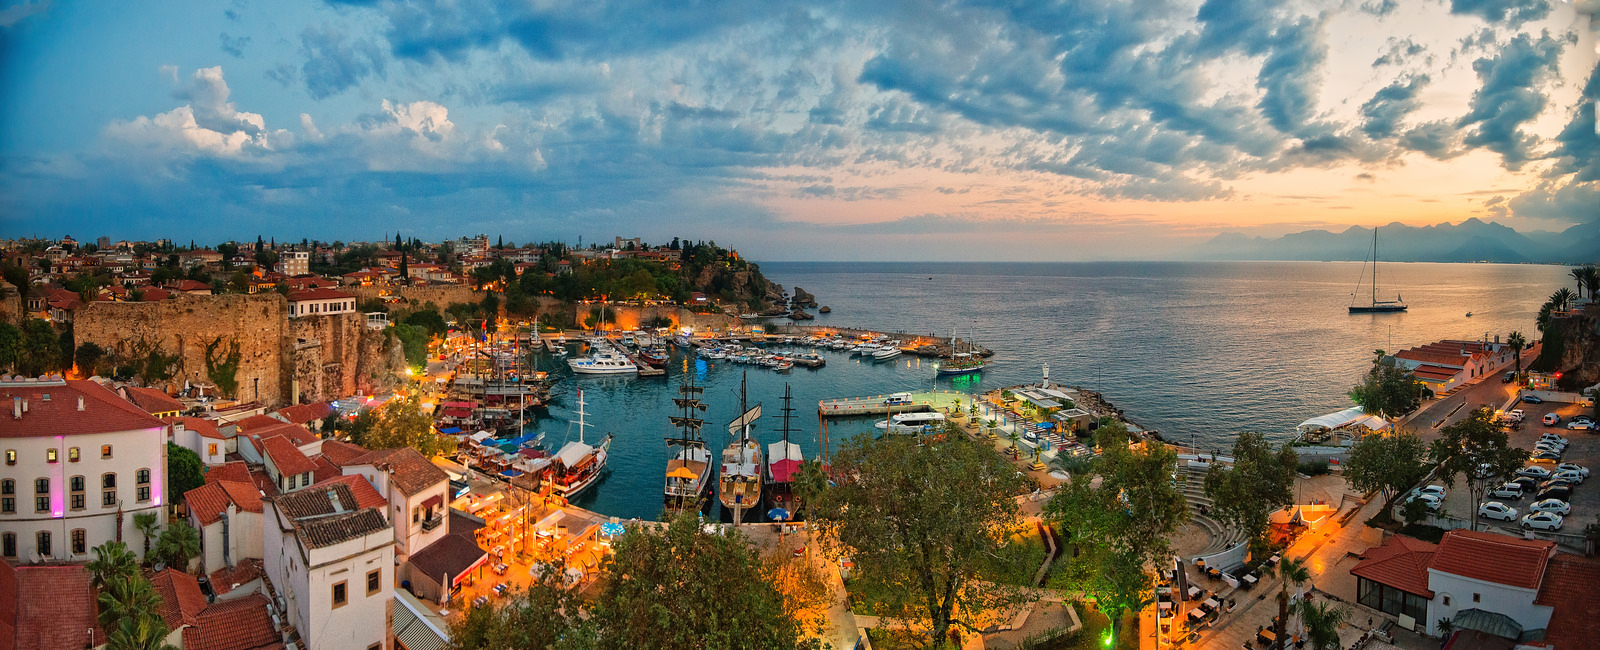 Antalya,Light Tours Vacation Activities, Holiday Locations,Cabin Tours Antalya 45